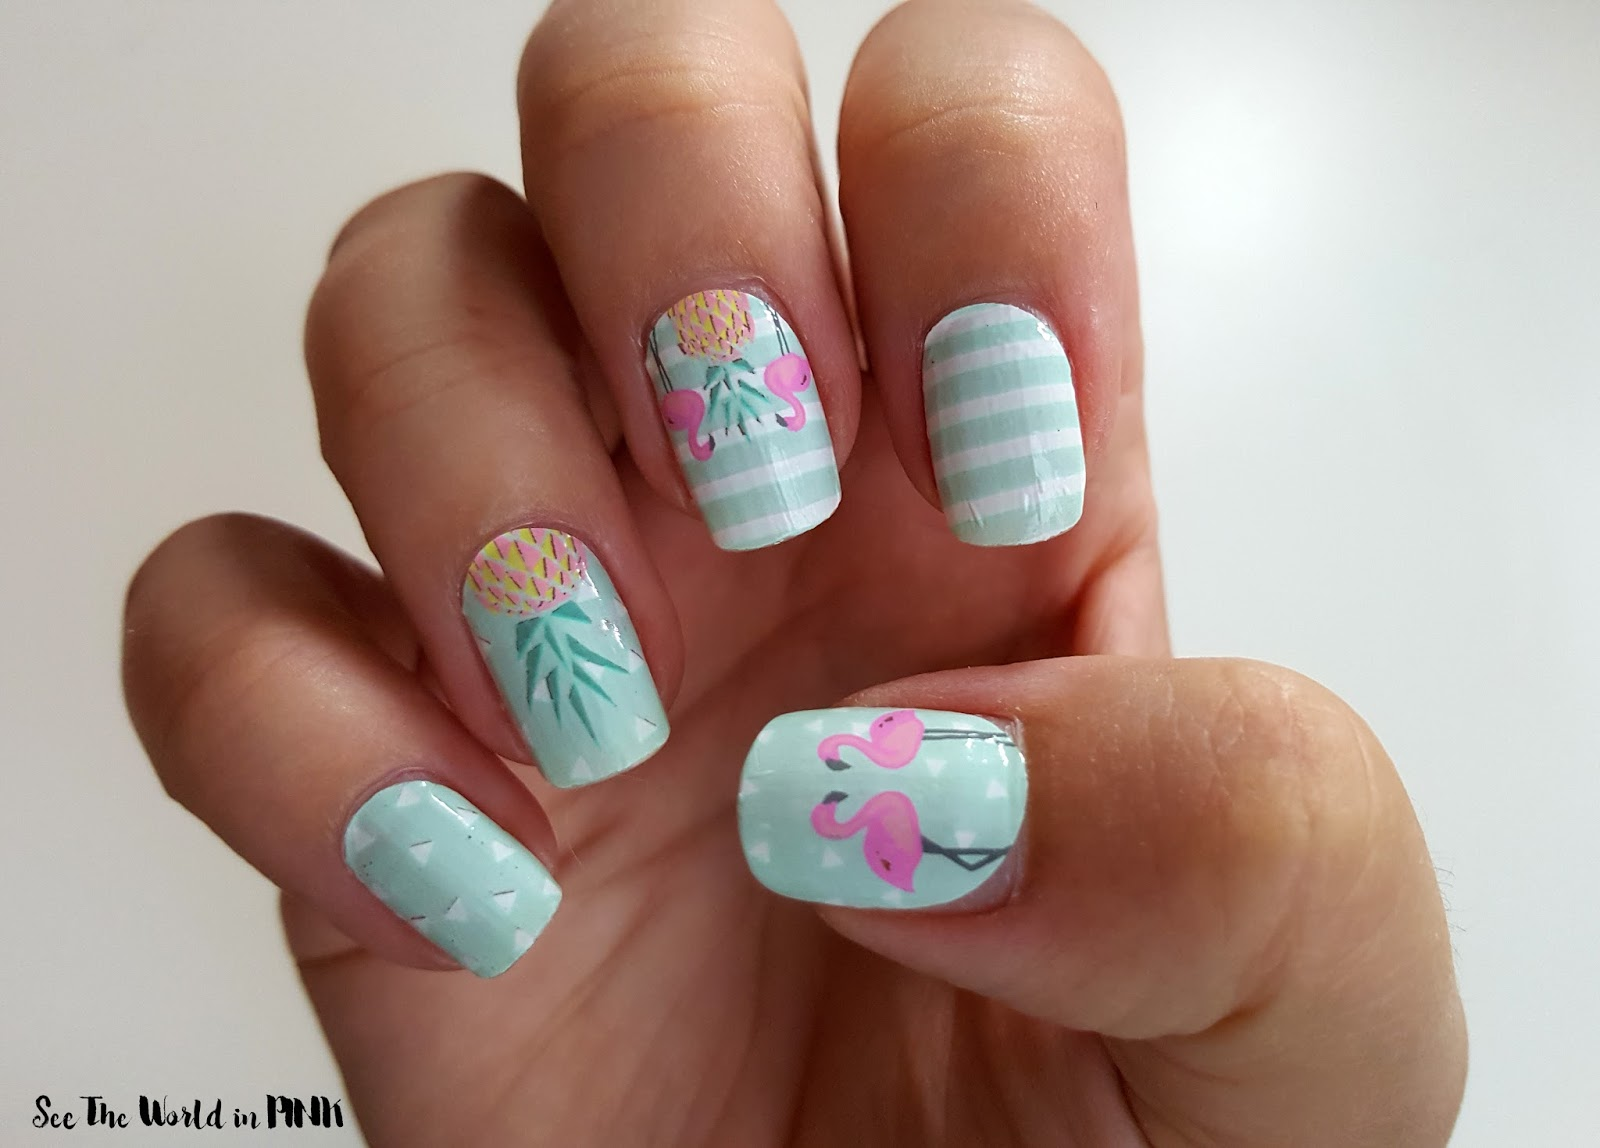 Manicure Tuesday - Go Scratch It Flamingo and Pineapple Nail Wraps